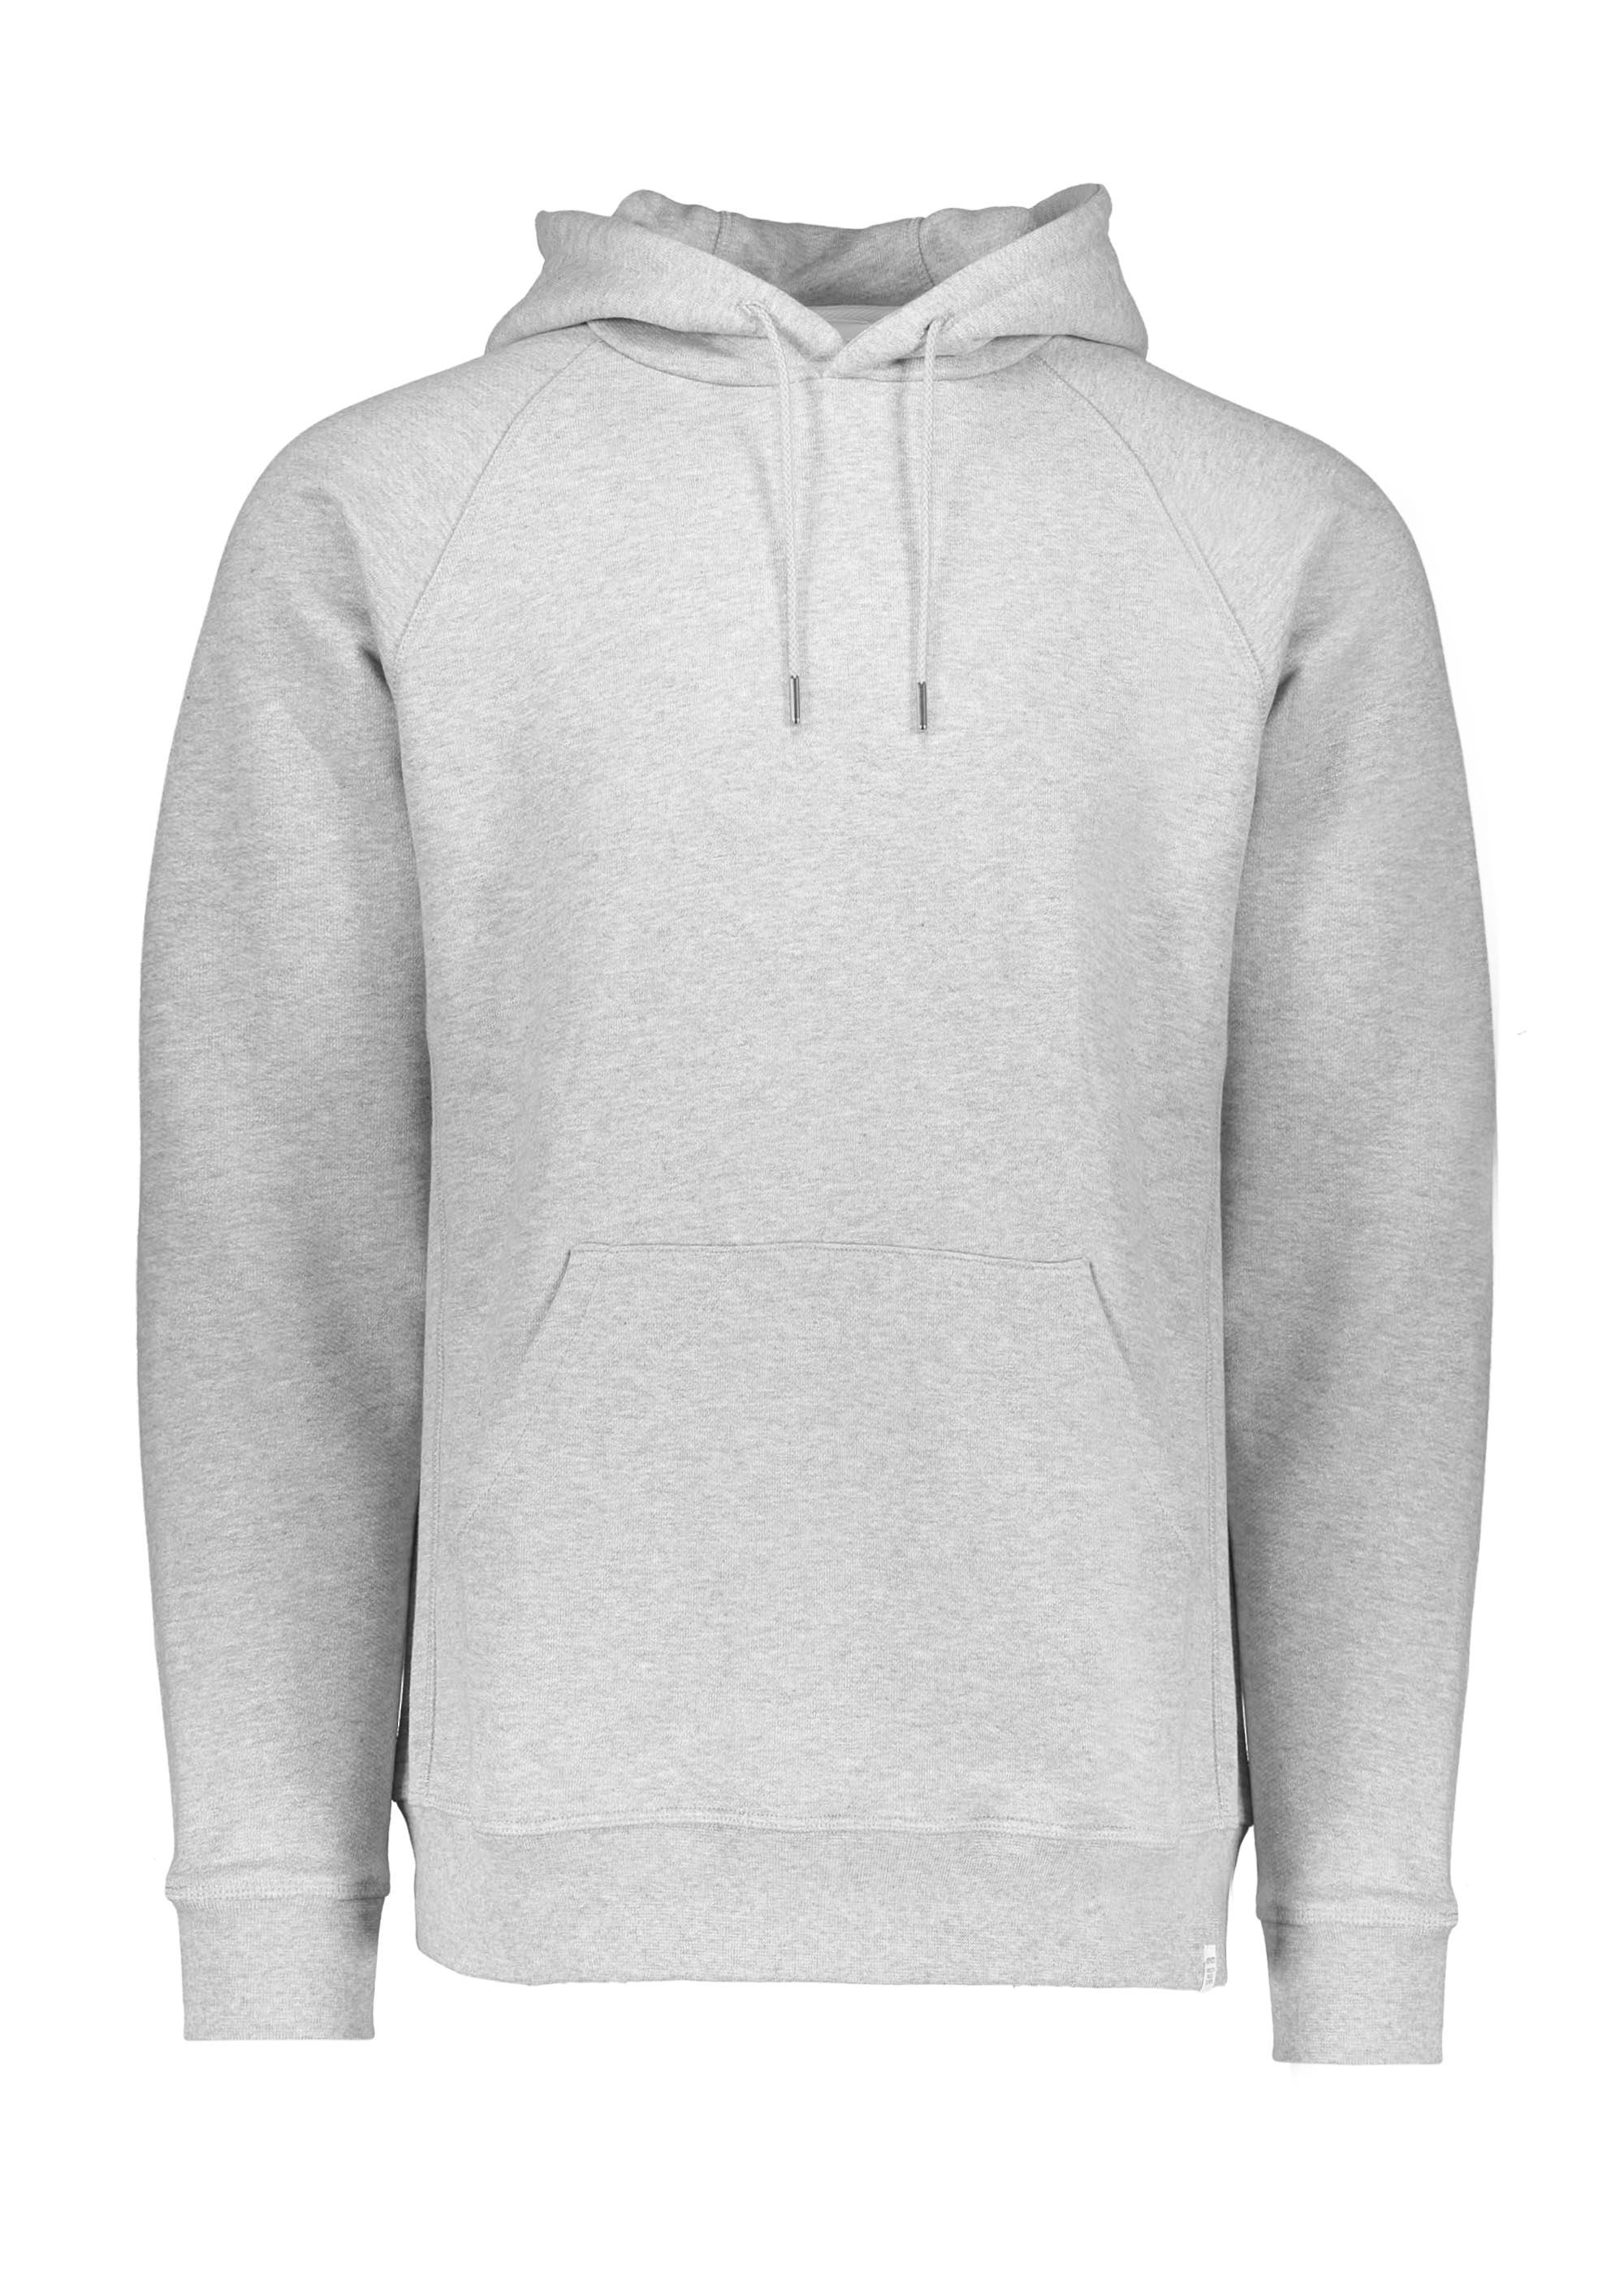 9685e98a Norse Projects Ketel Summer Classic Hood - Light Grey - Hoodies from ...